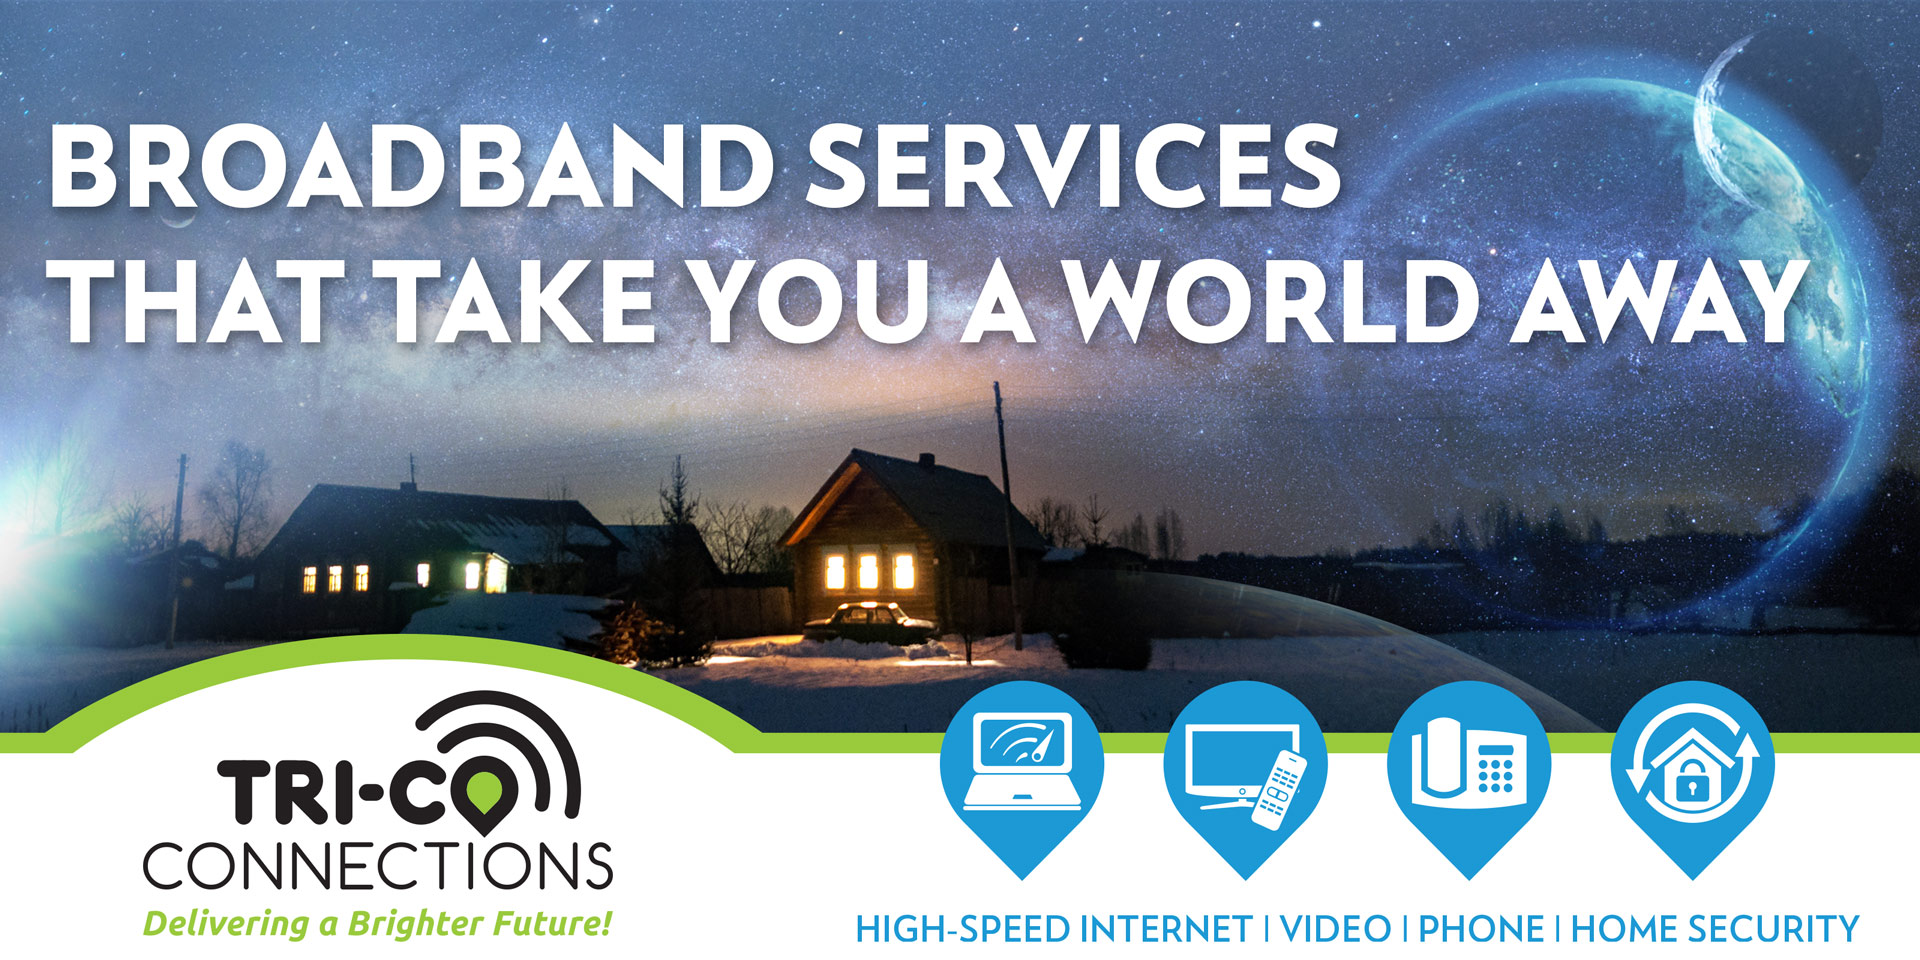 Next Generation Video Entertainment ftom Tri-County Fiber-to-Home Services